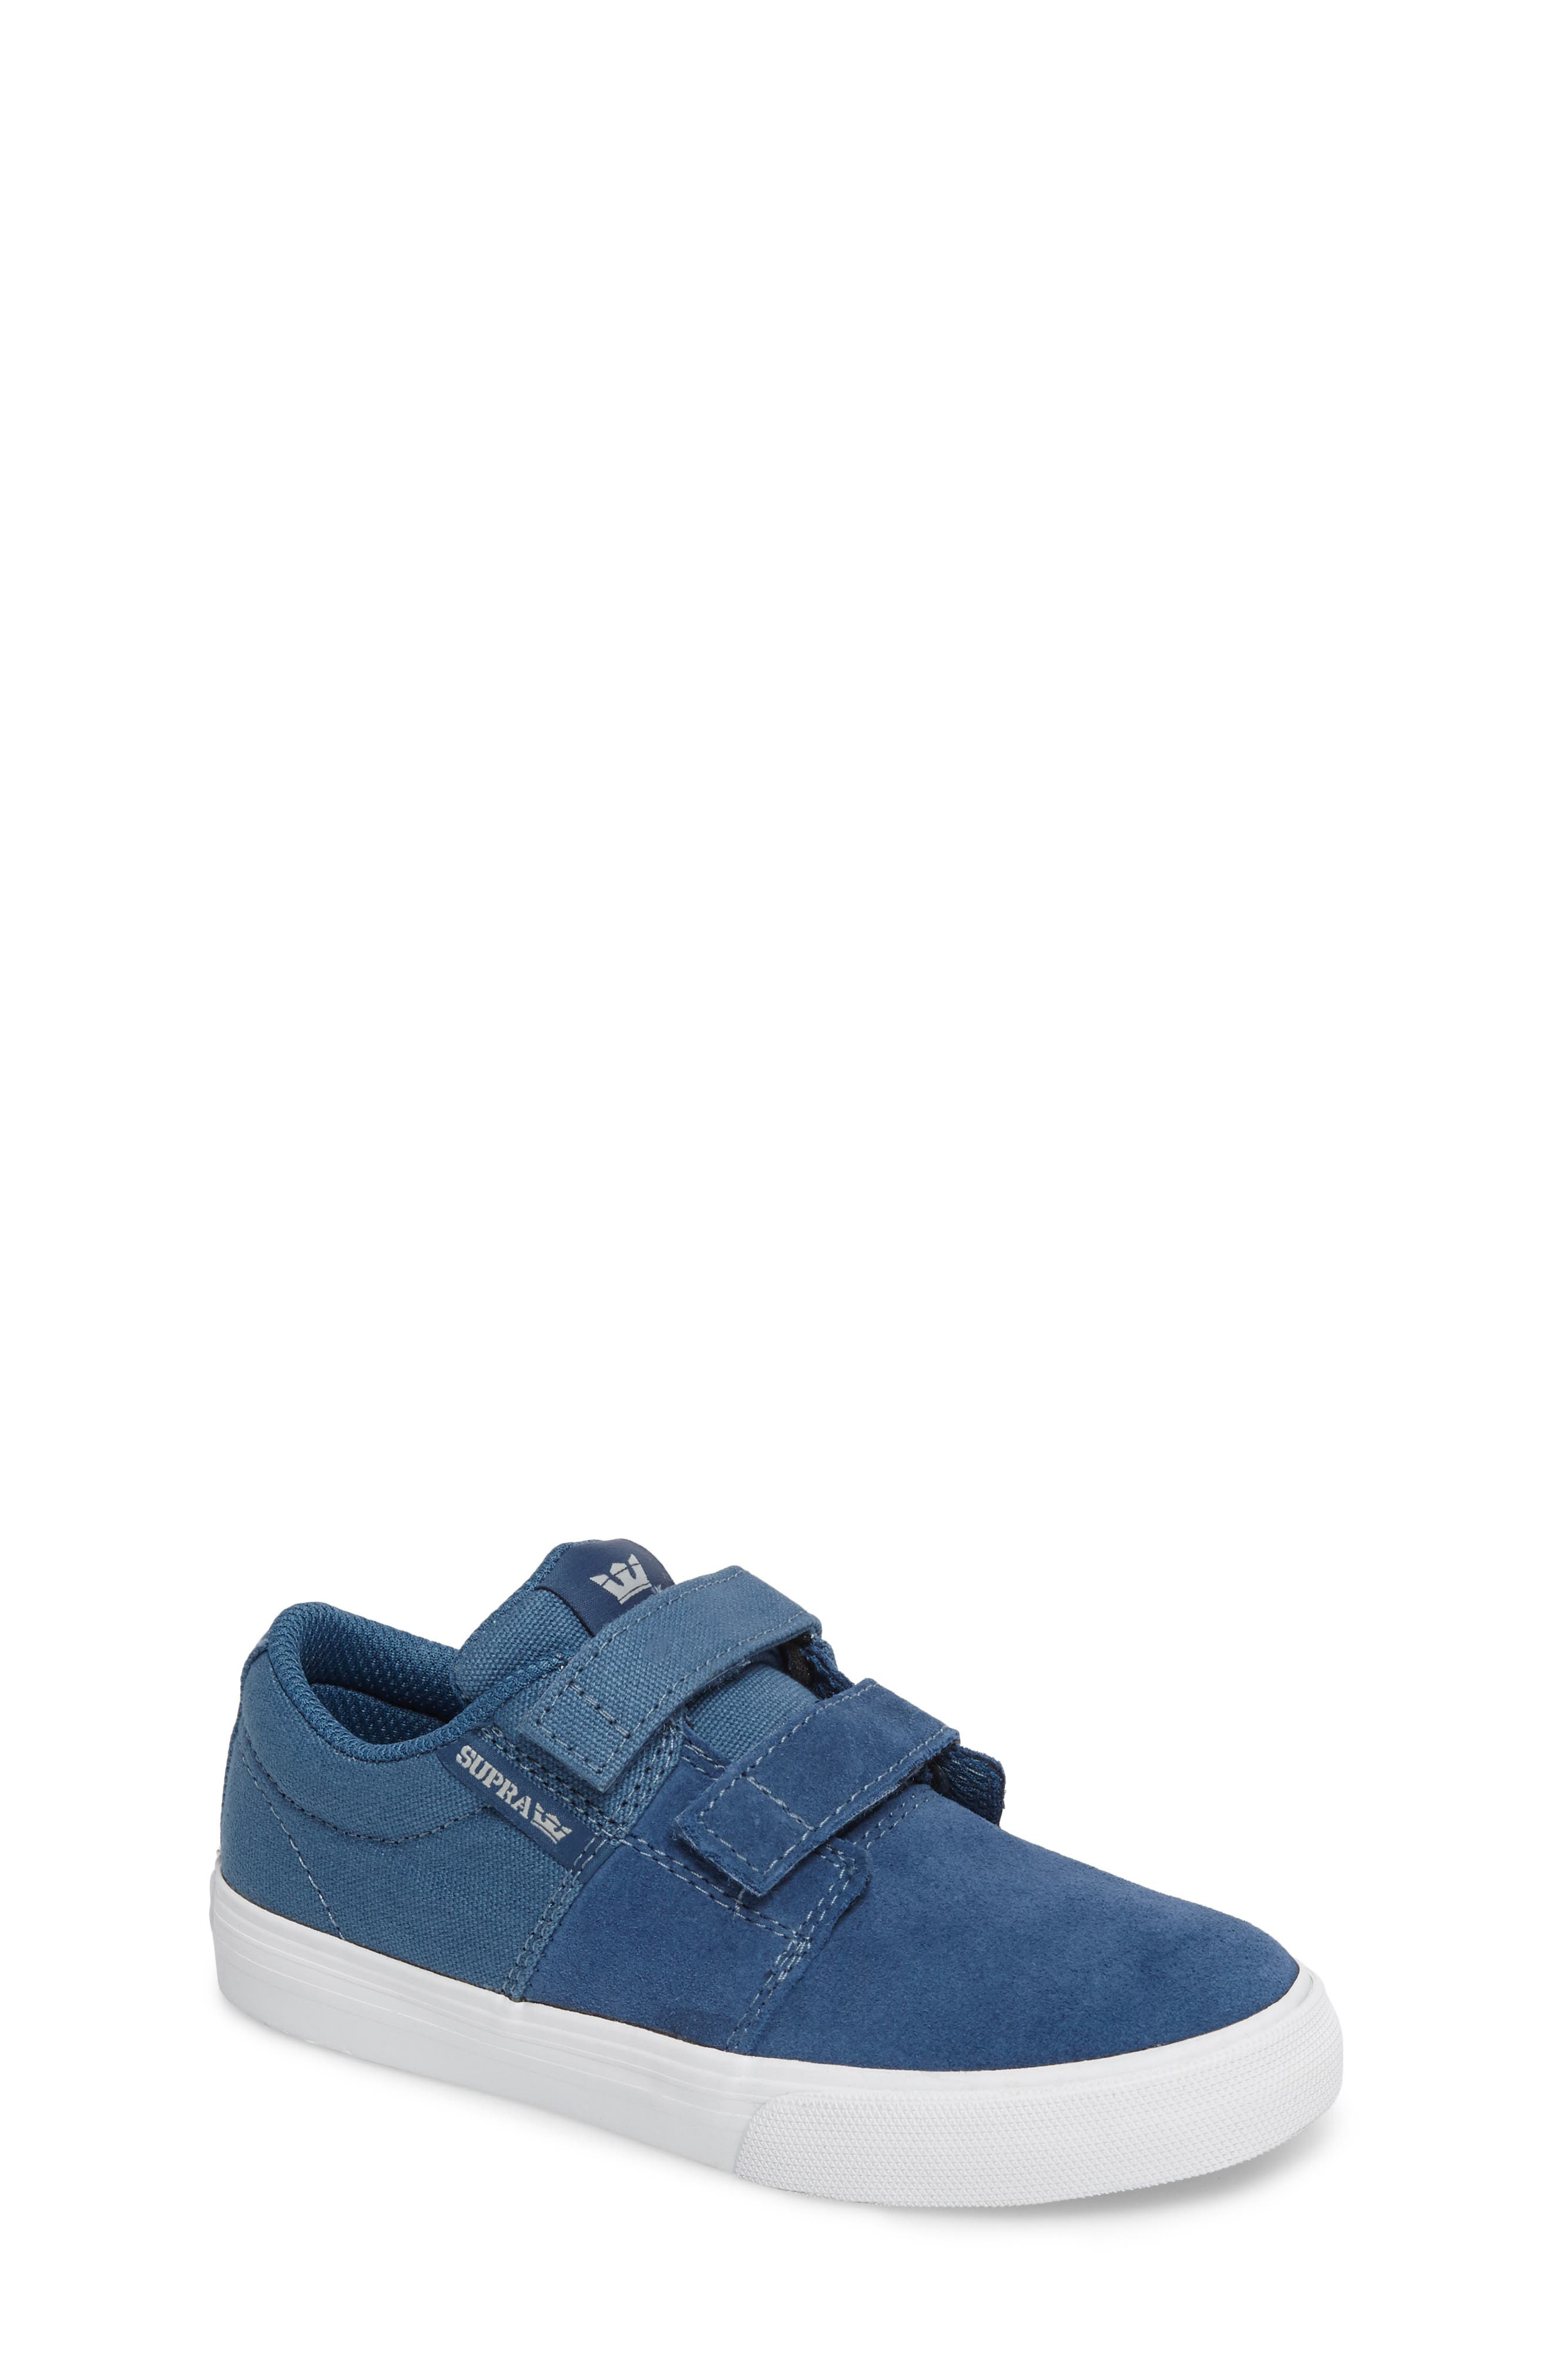 Supra Stacks Low Top Sneaker (Toddler, Little Kid & Big Kid)